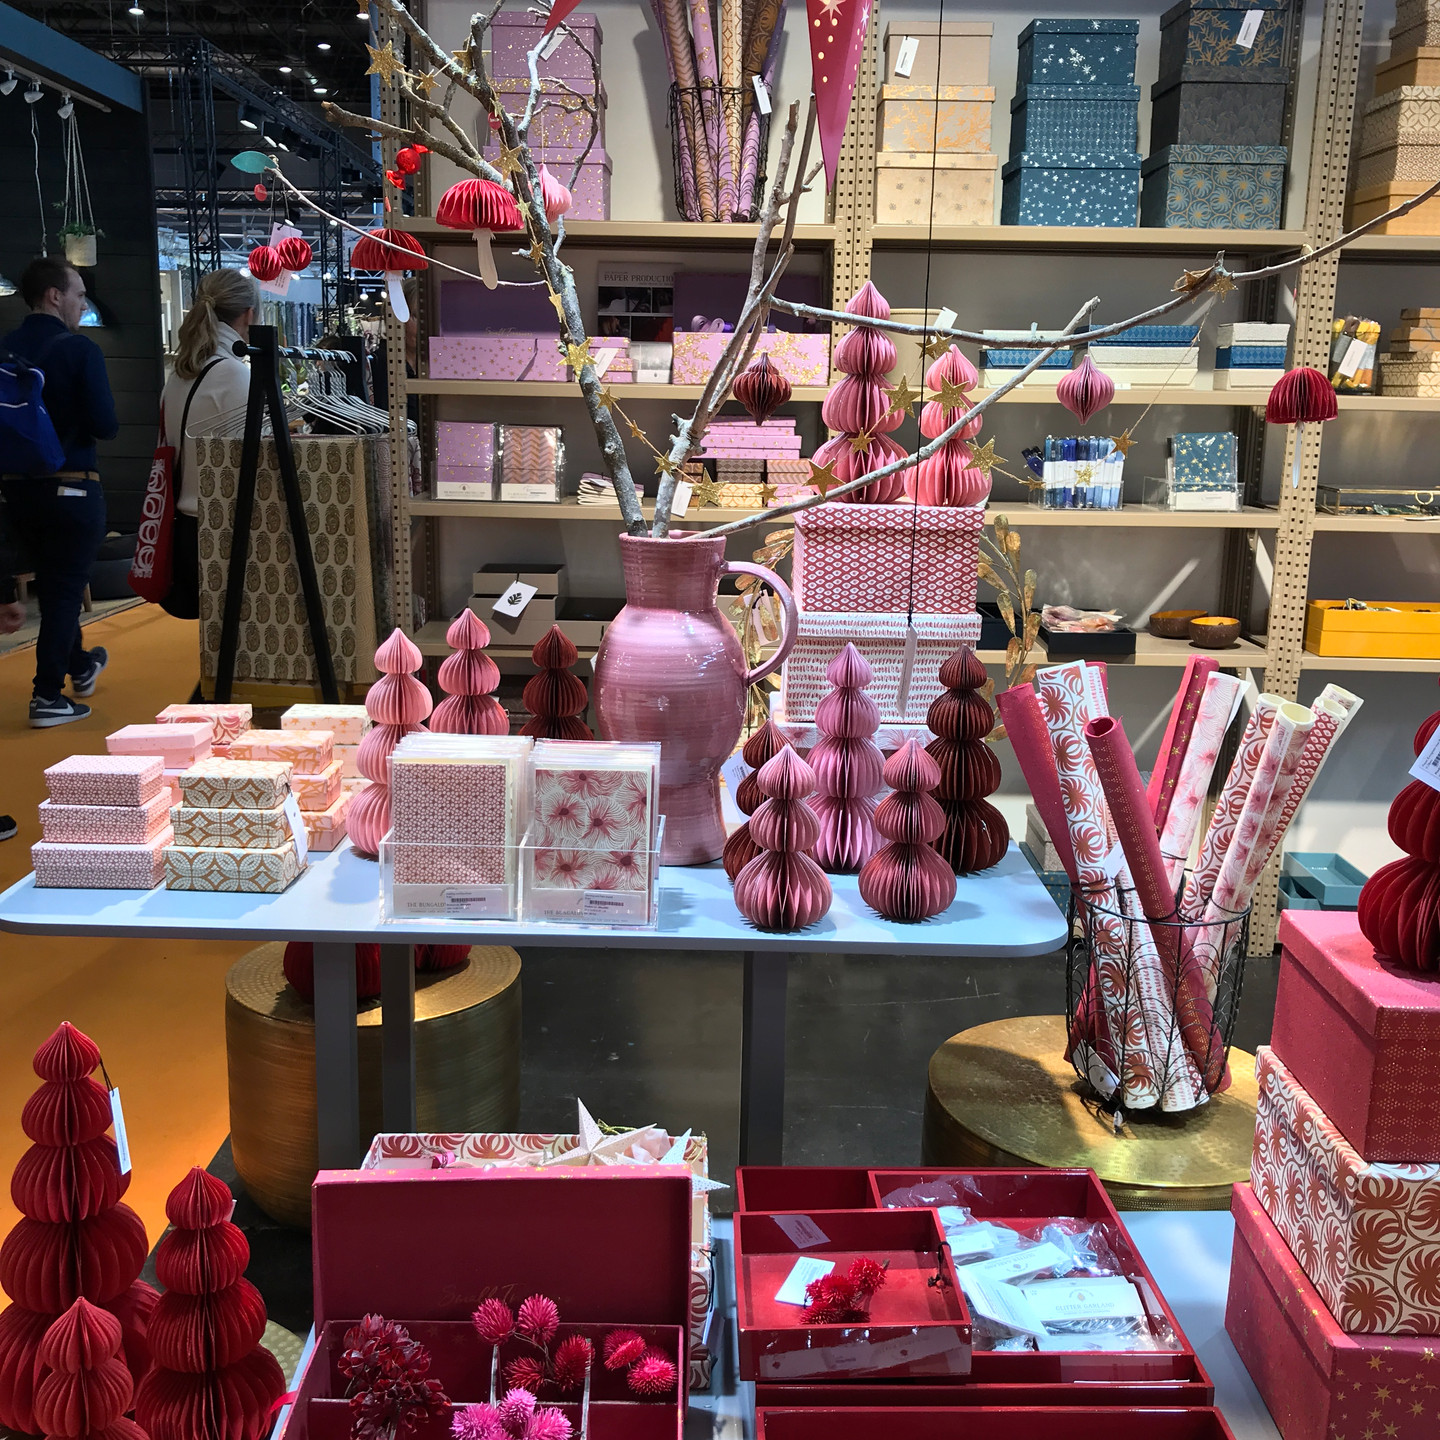 Burgundy and Mauve Papergoods Display at Maison & Objet